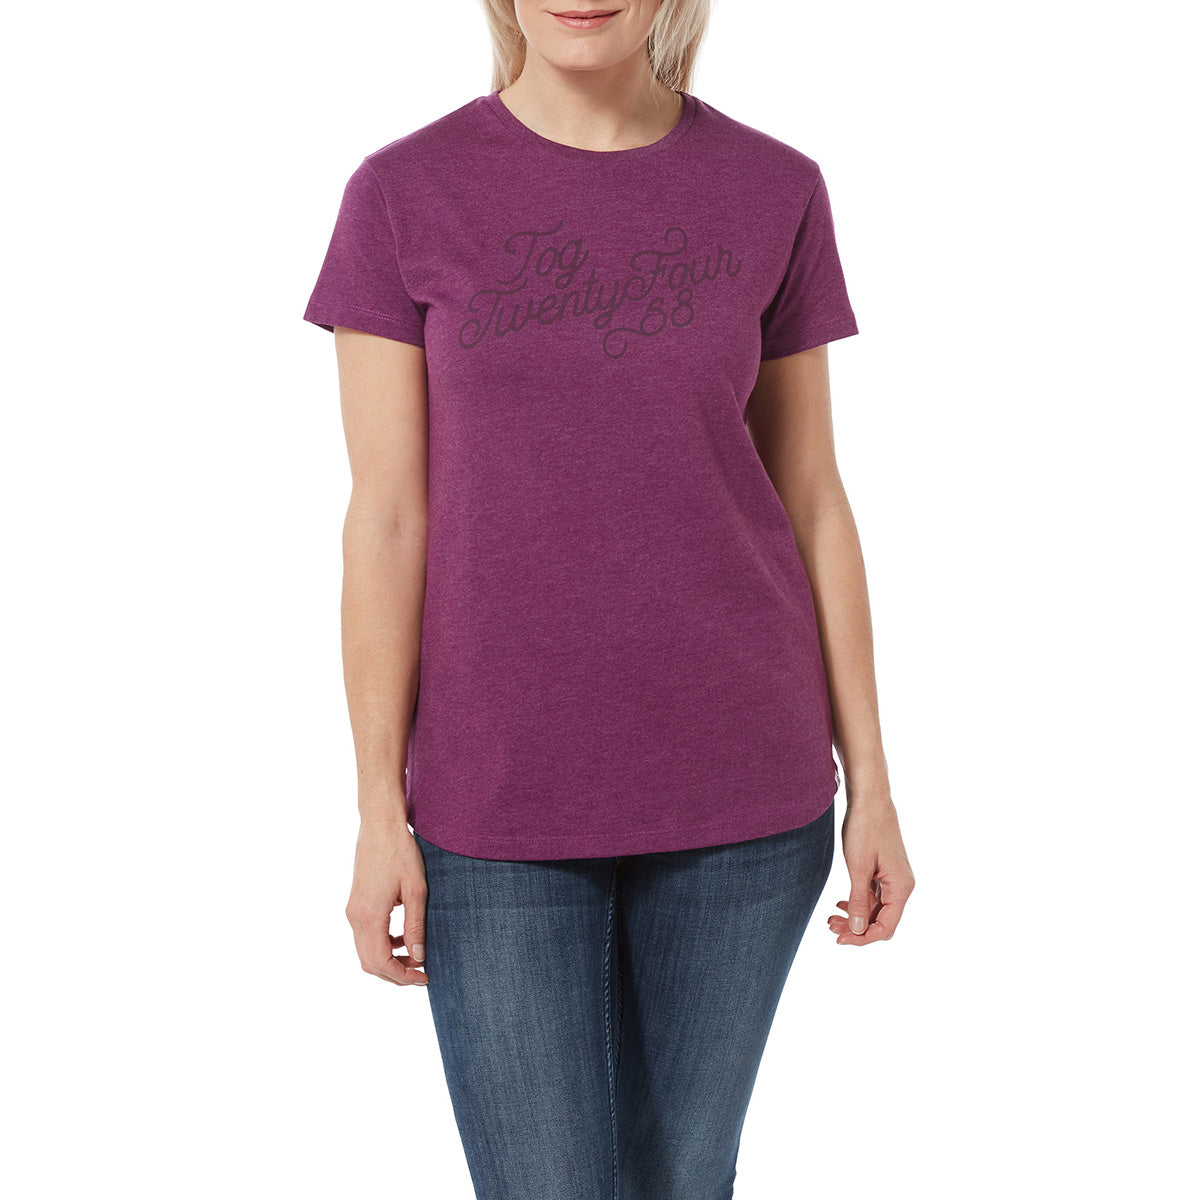 Harome Womens Graphic T-Shirt Curly - Mulberry Marl